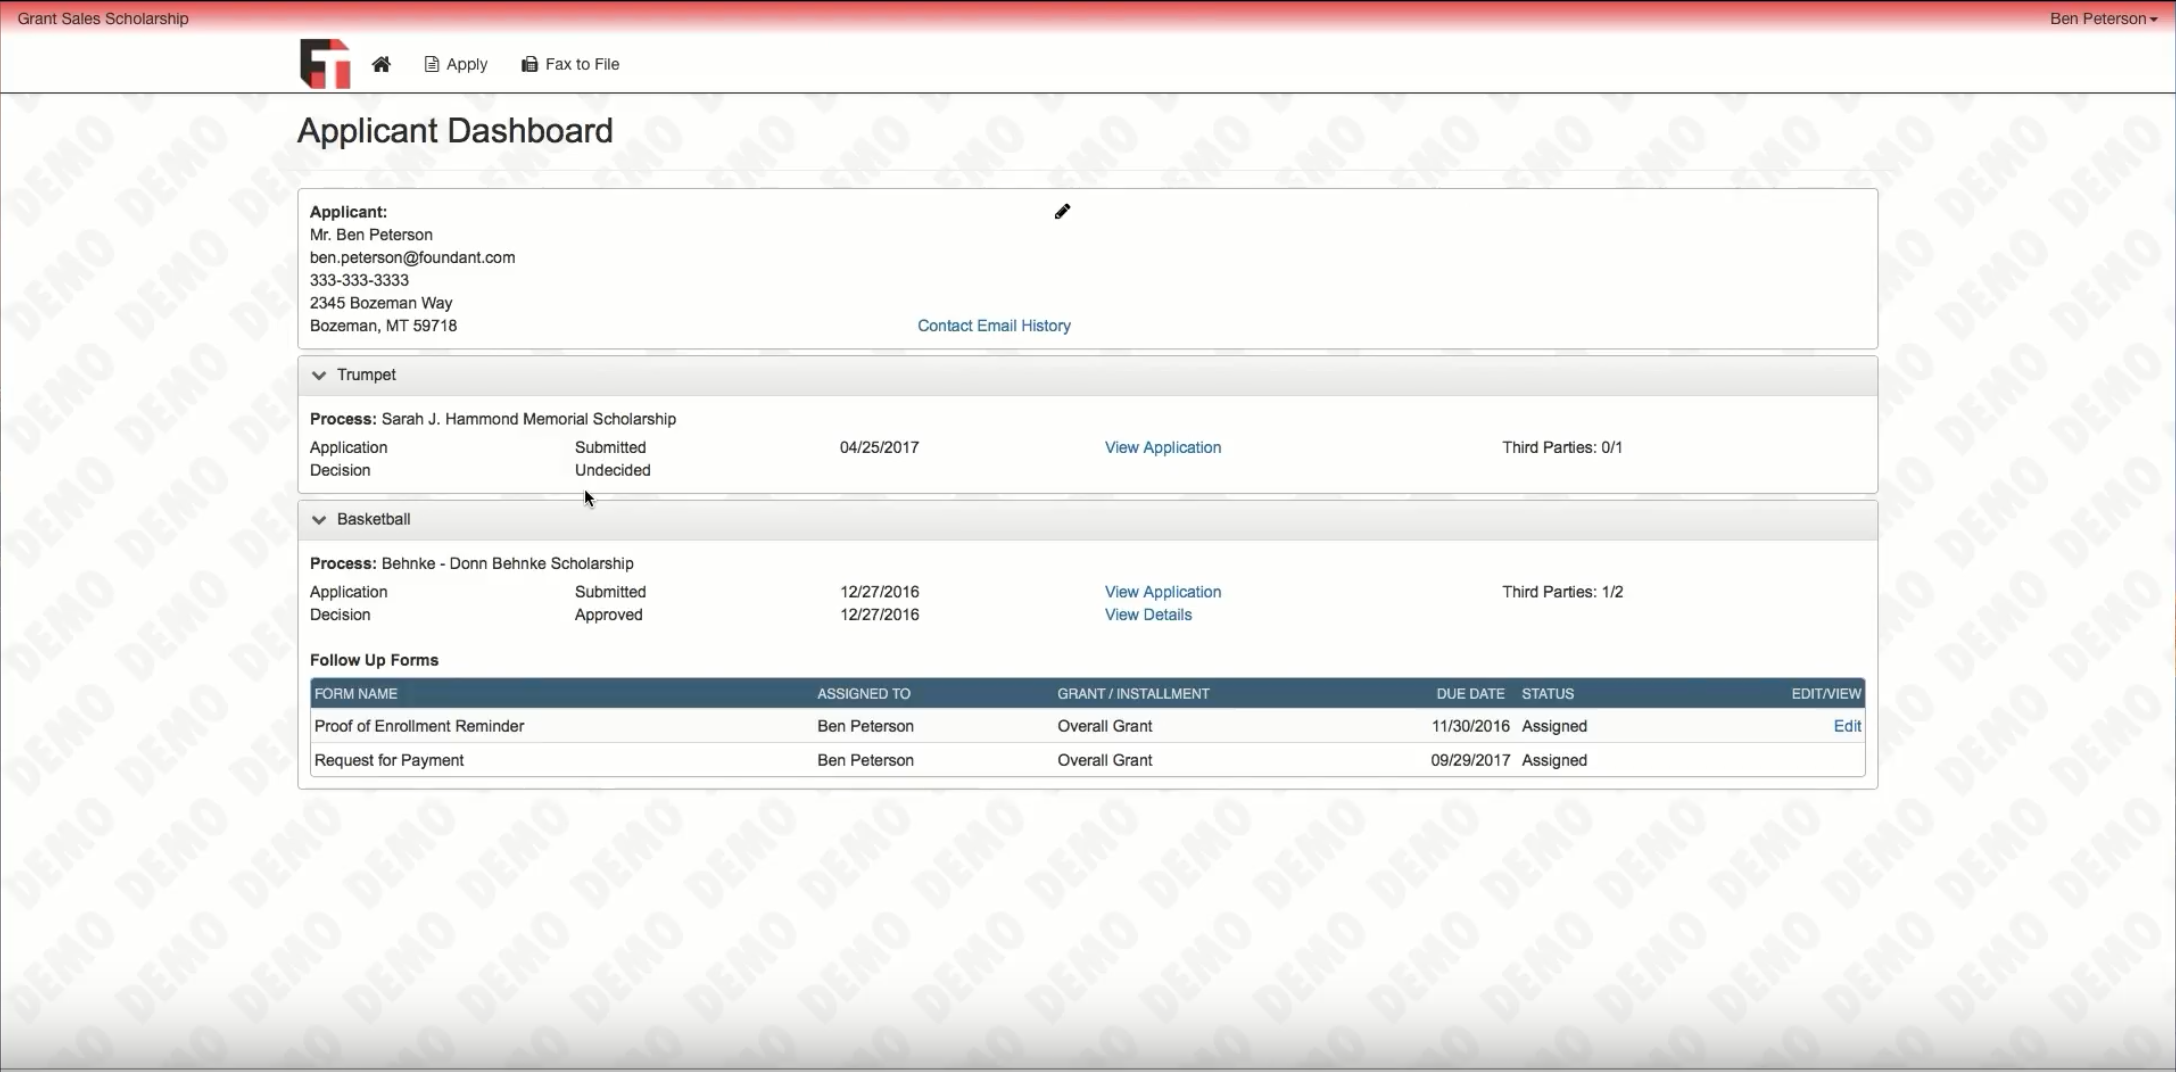 View all submitted and approved applications via the dashboard